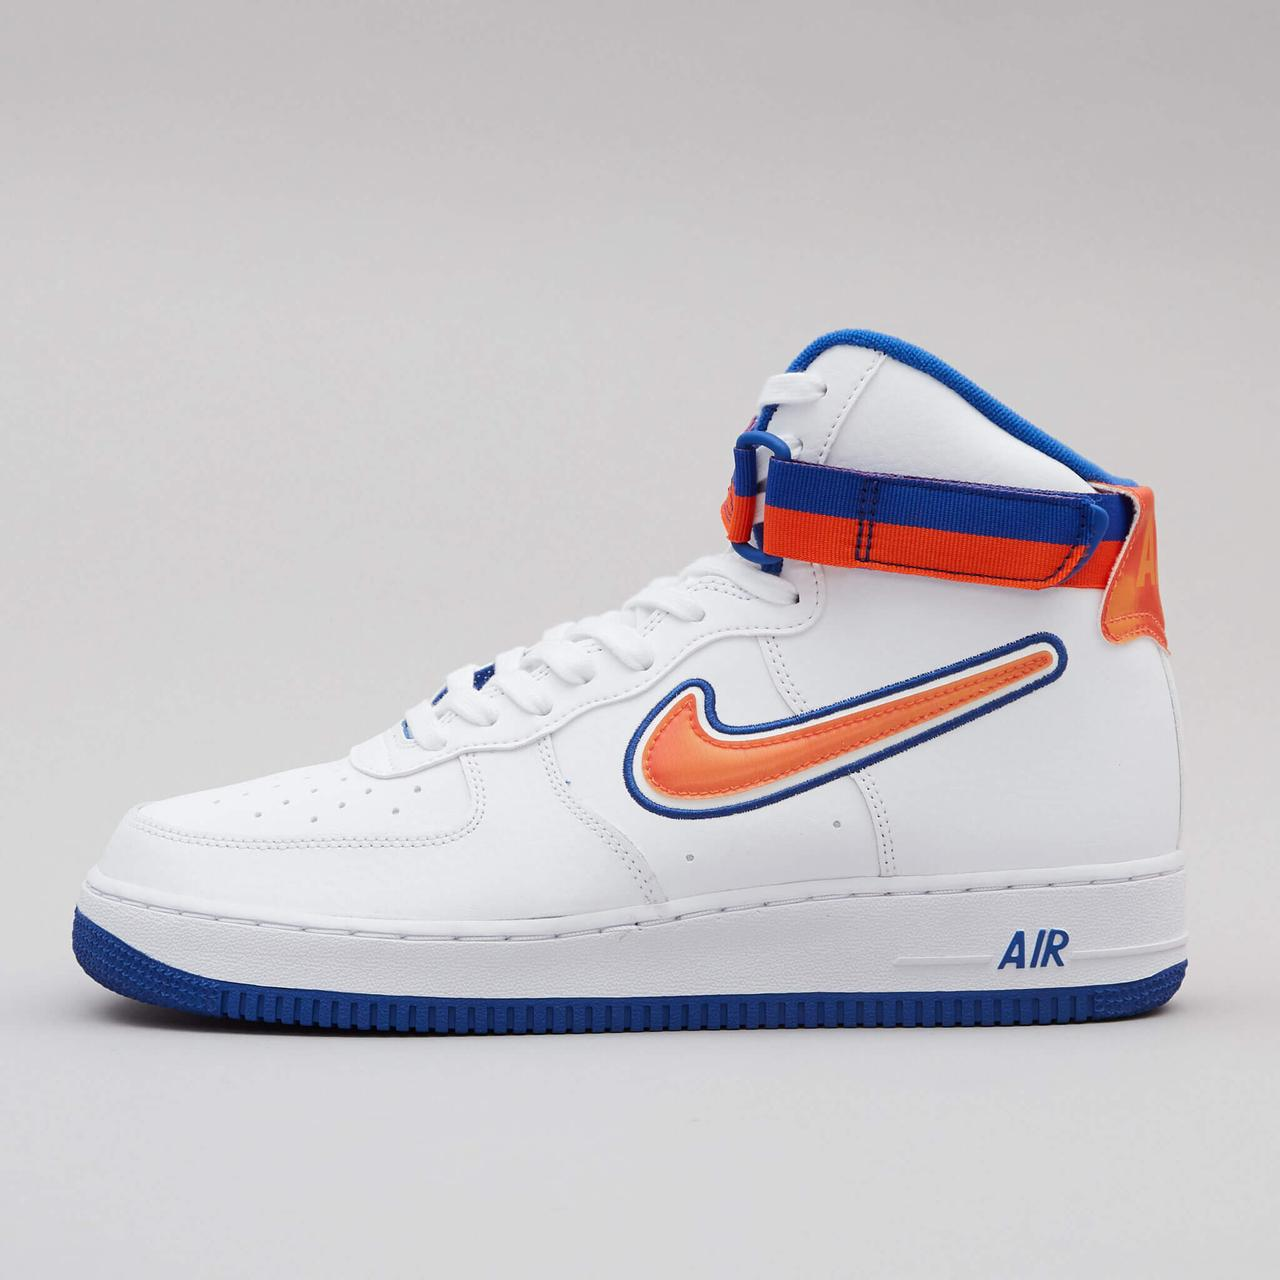 74efea5f Мужские кроссовки Nike Air Force 1 High '07 LV8 Sport AV3938-100 - Parallel